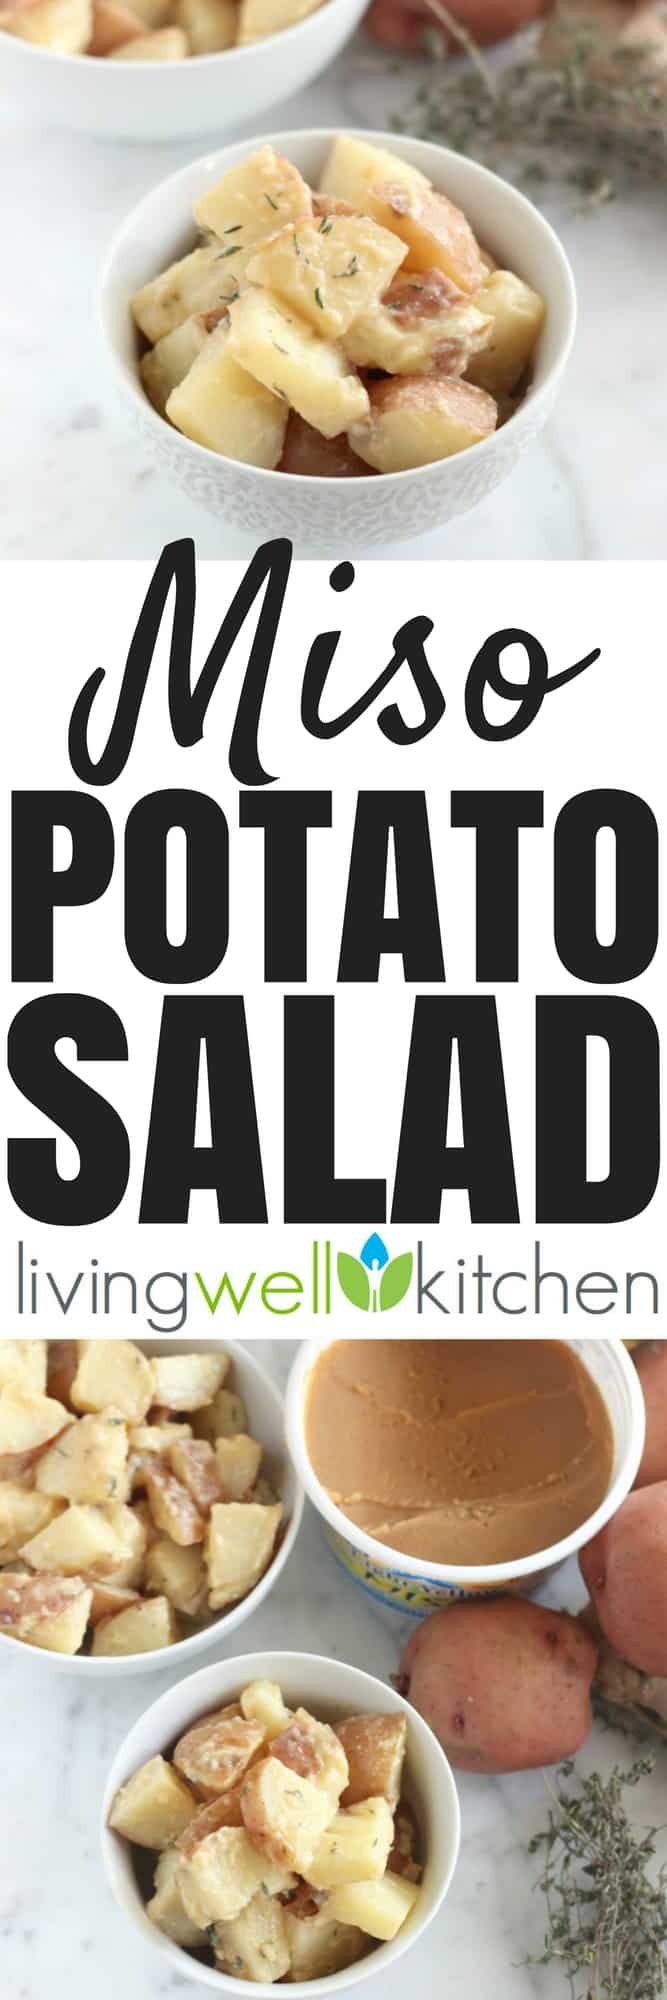 This vegan Miso Potato Salad recipe is a probiotic-filled side dish that can be made ahead or served immediately. Gluten free, dairy free, vegetarian